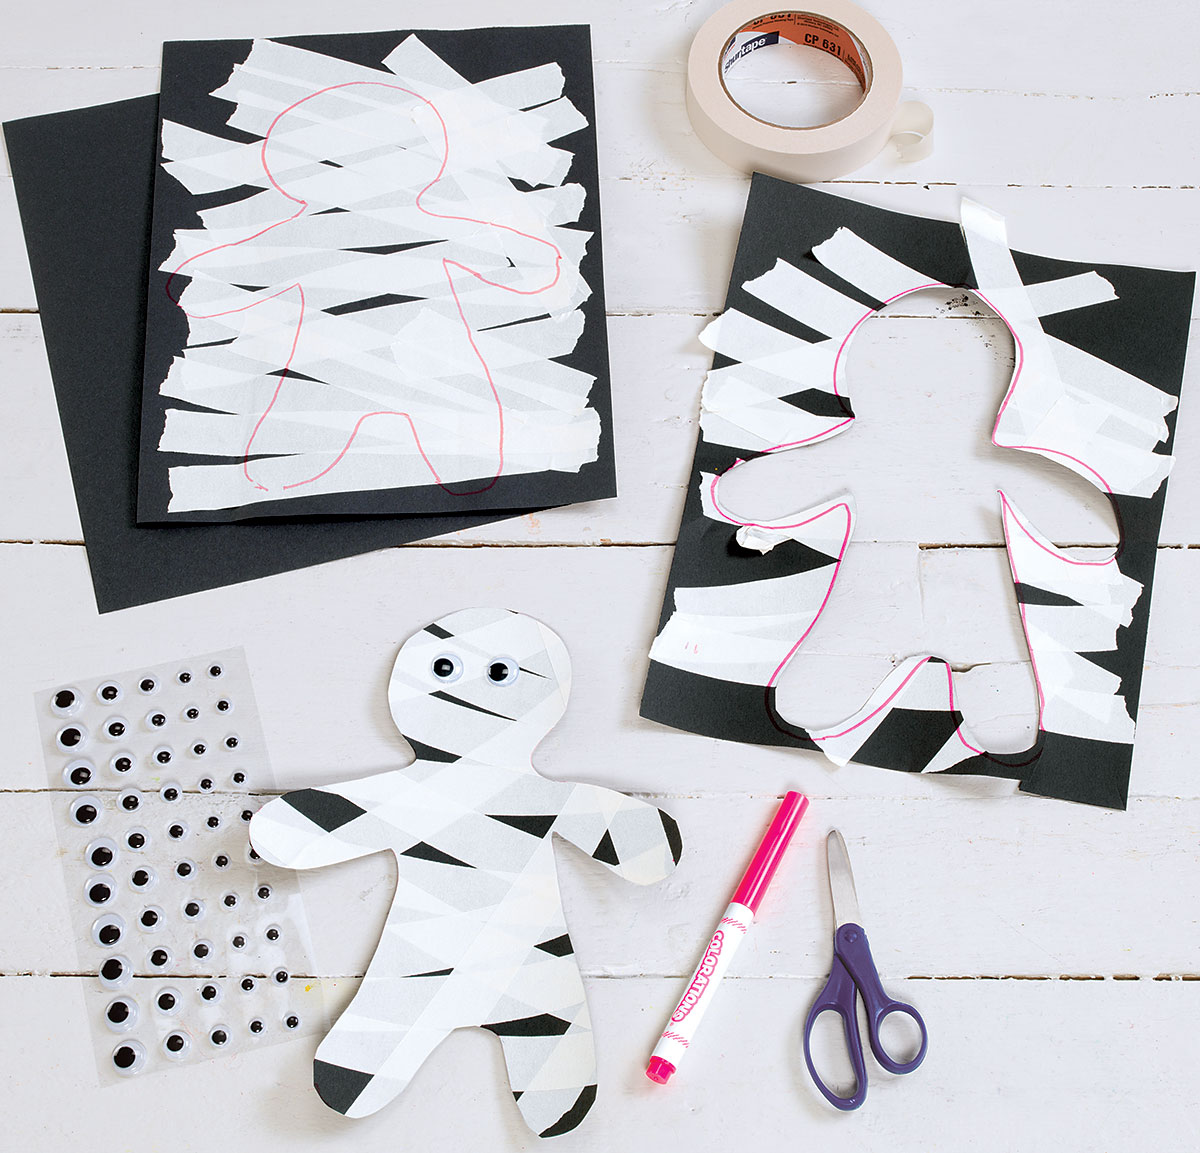 Tape Mummies Creative Craft Activity for Halloween